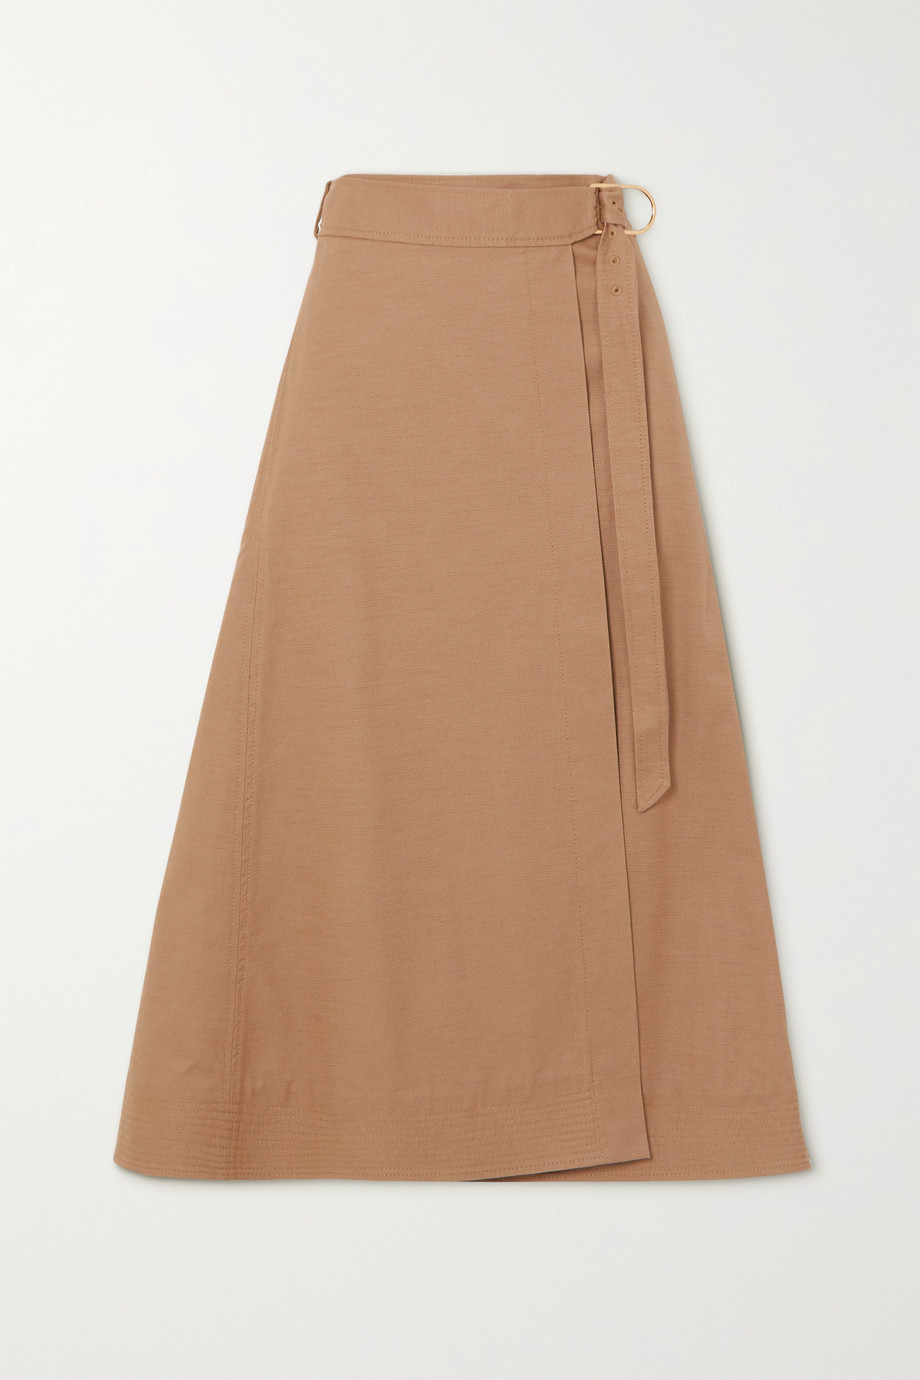 Gabriela Hearst Linda cotton-drill wrap skirt